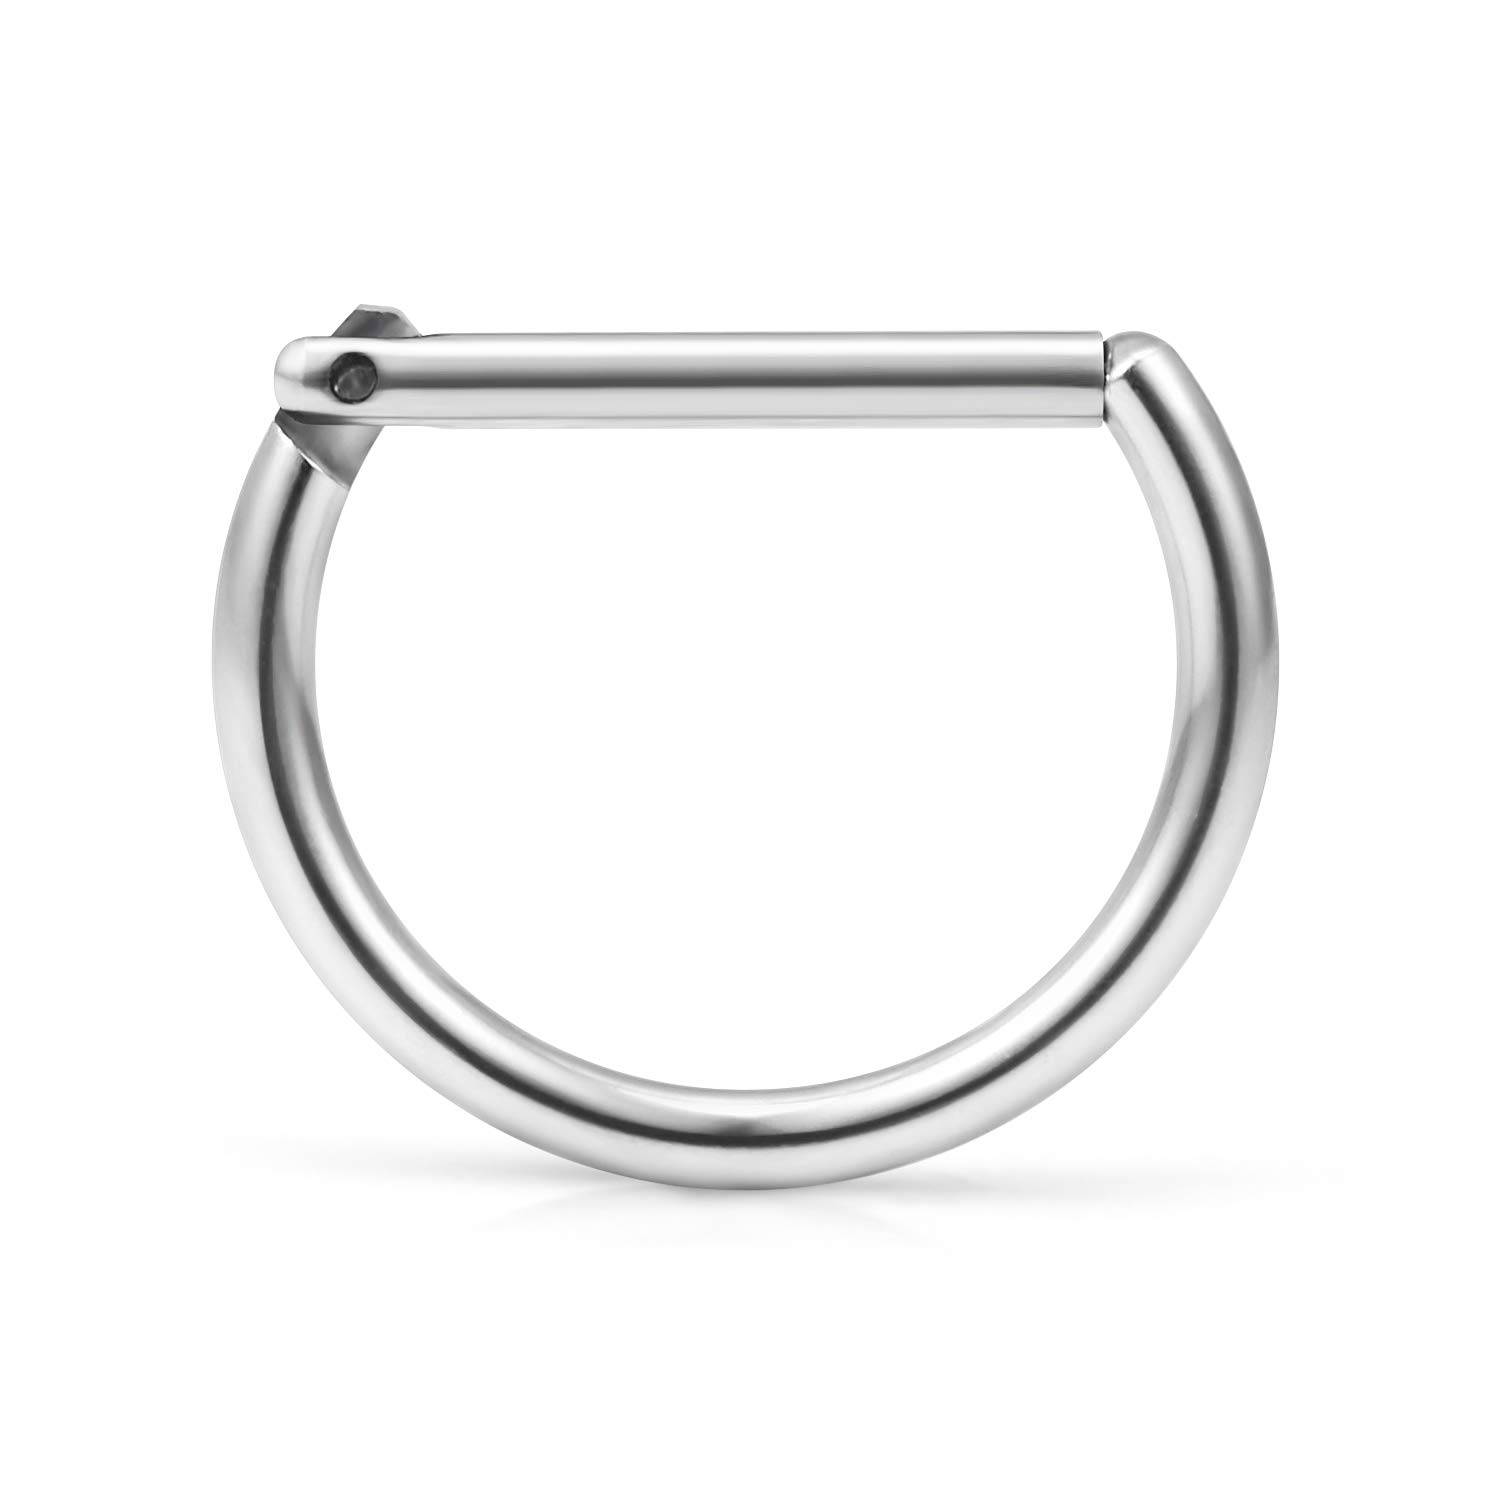 Ruifan 316L Stainless Steel D Shaped Hinged Seamless Segment Hoop Septum Clicker Ring Lip Helix Tragus Cartilage Earrings Nose Rings Pirecing 16g 10mm BH00658